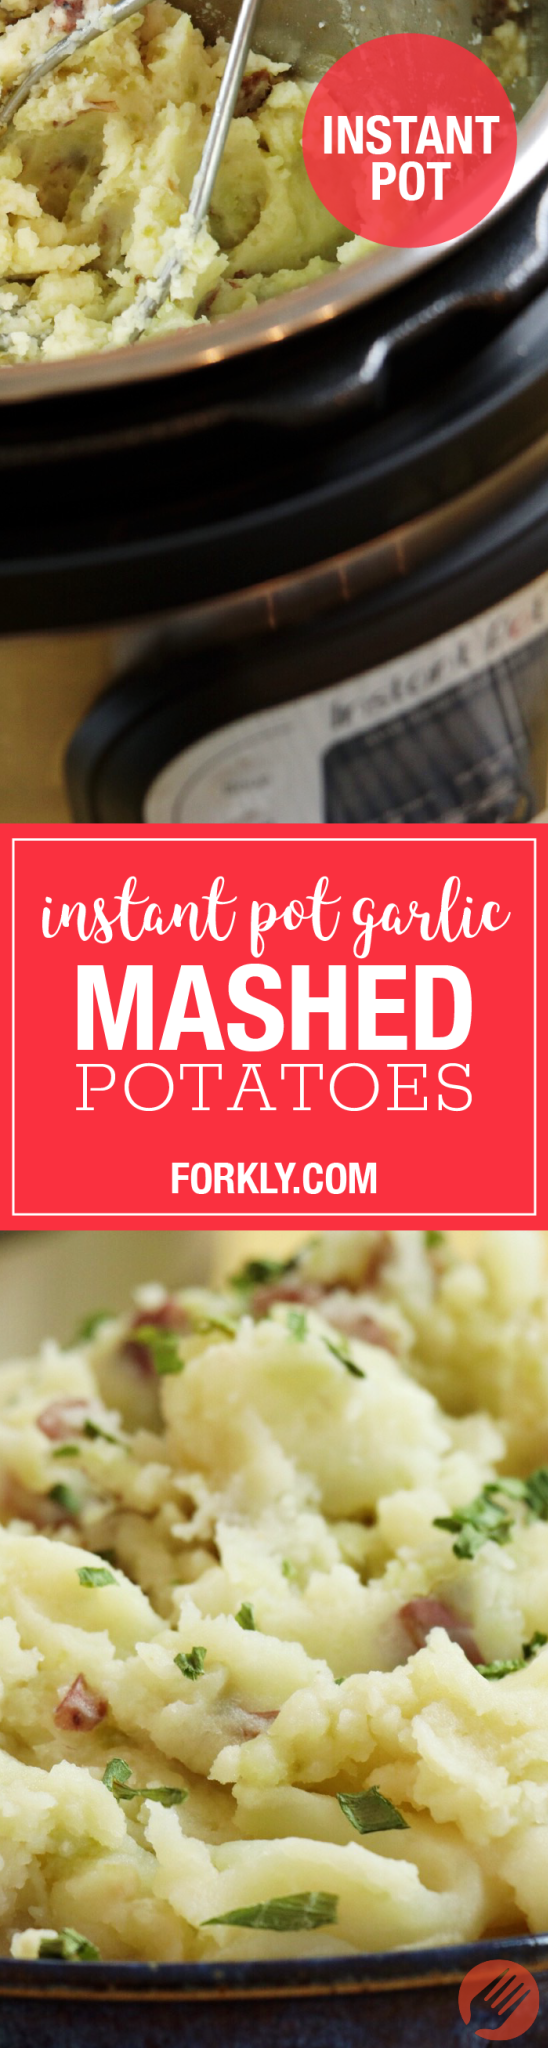 Instant Pot Garlic Mashed Potatoes - Forkly